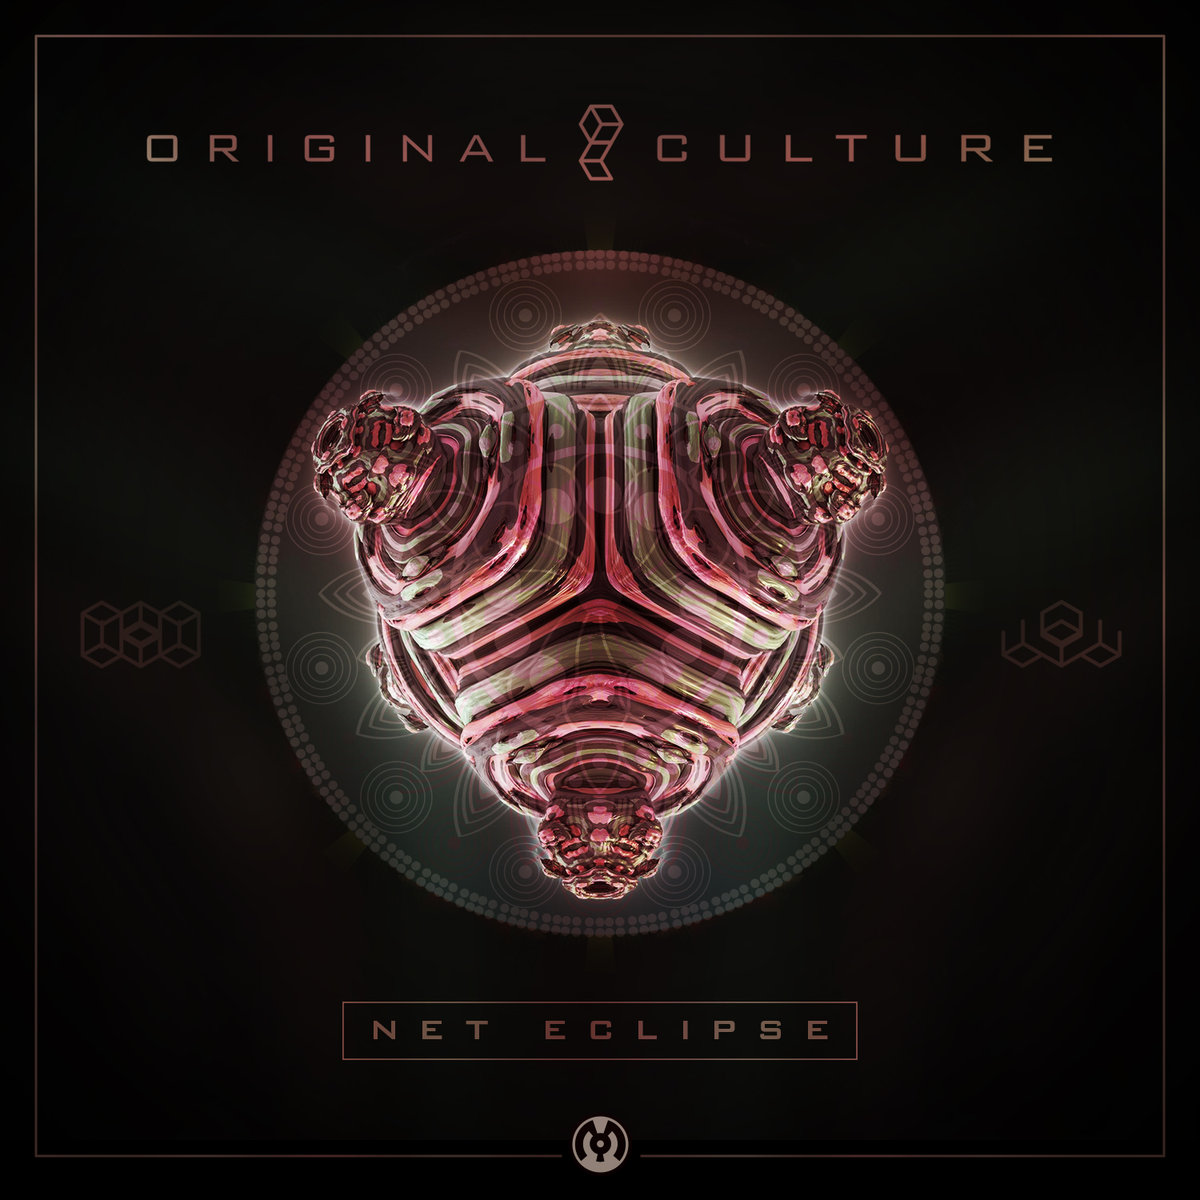 Orginal Culture - BioLogic @ 'Net Eclipse' album (electronic, dubstep)